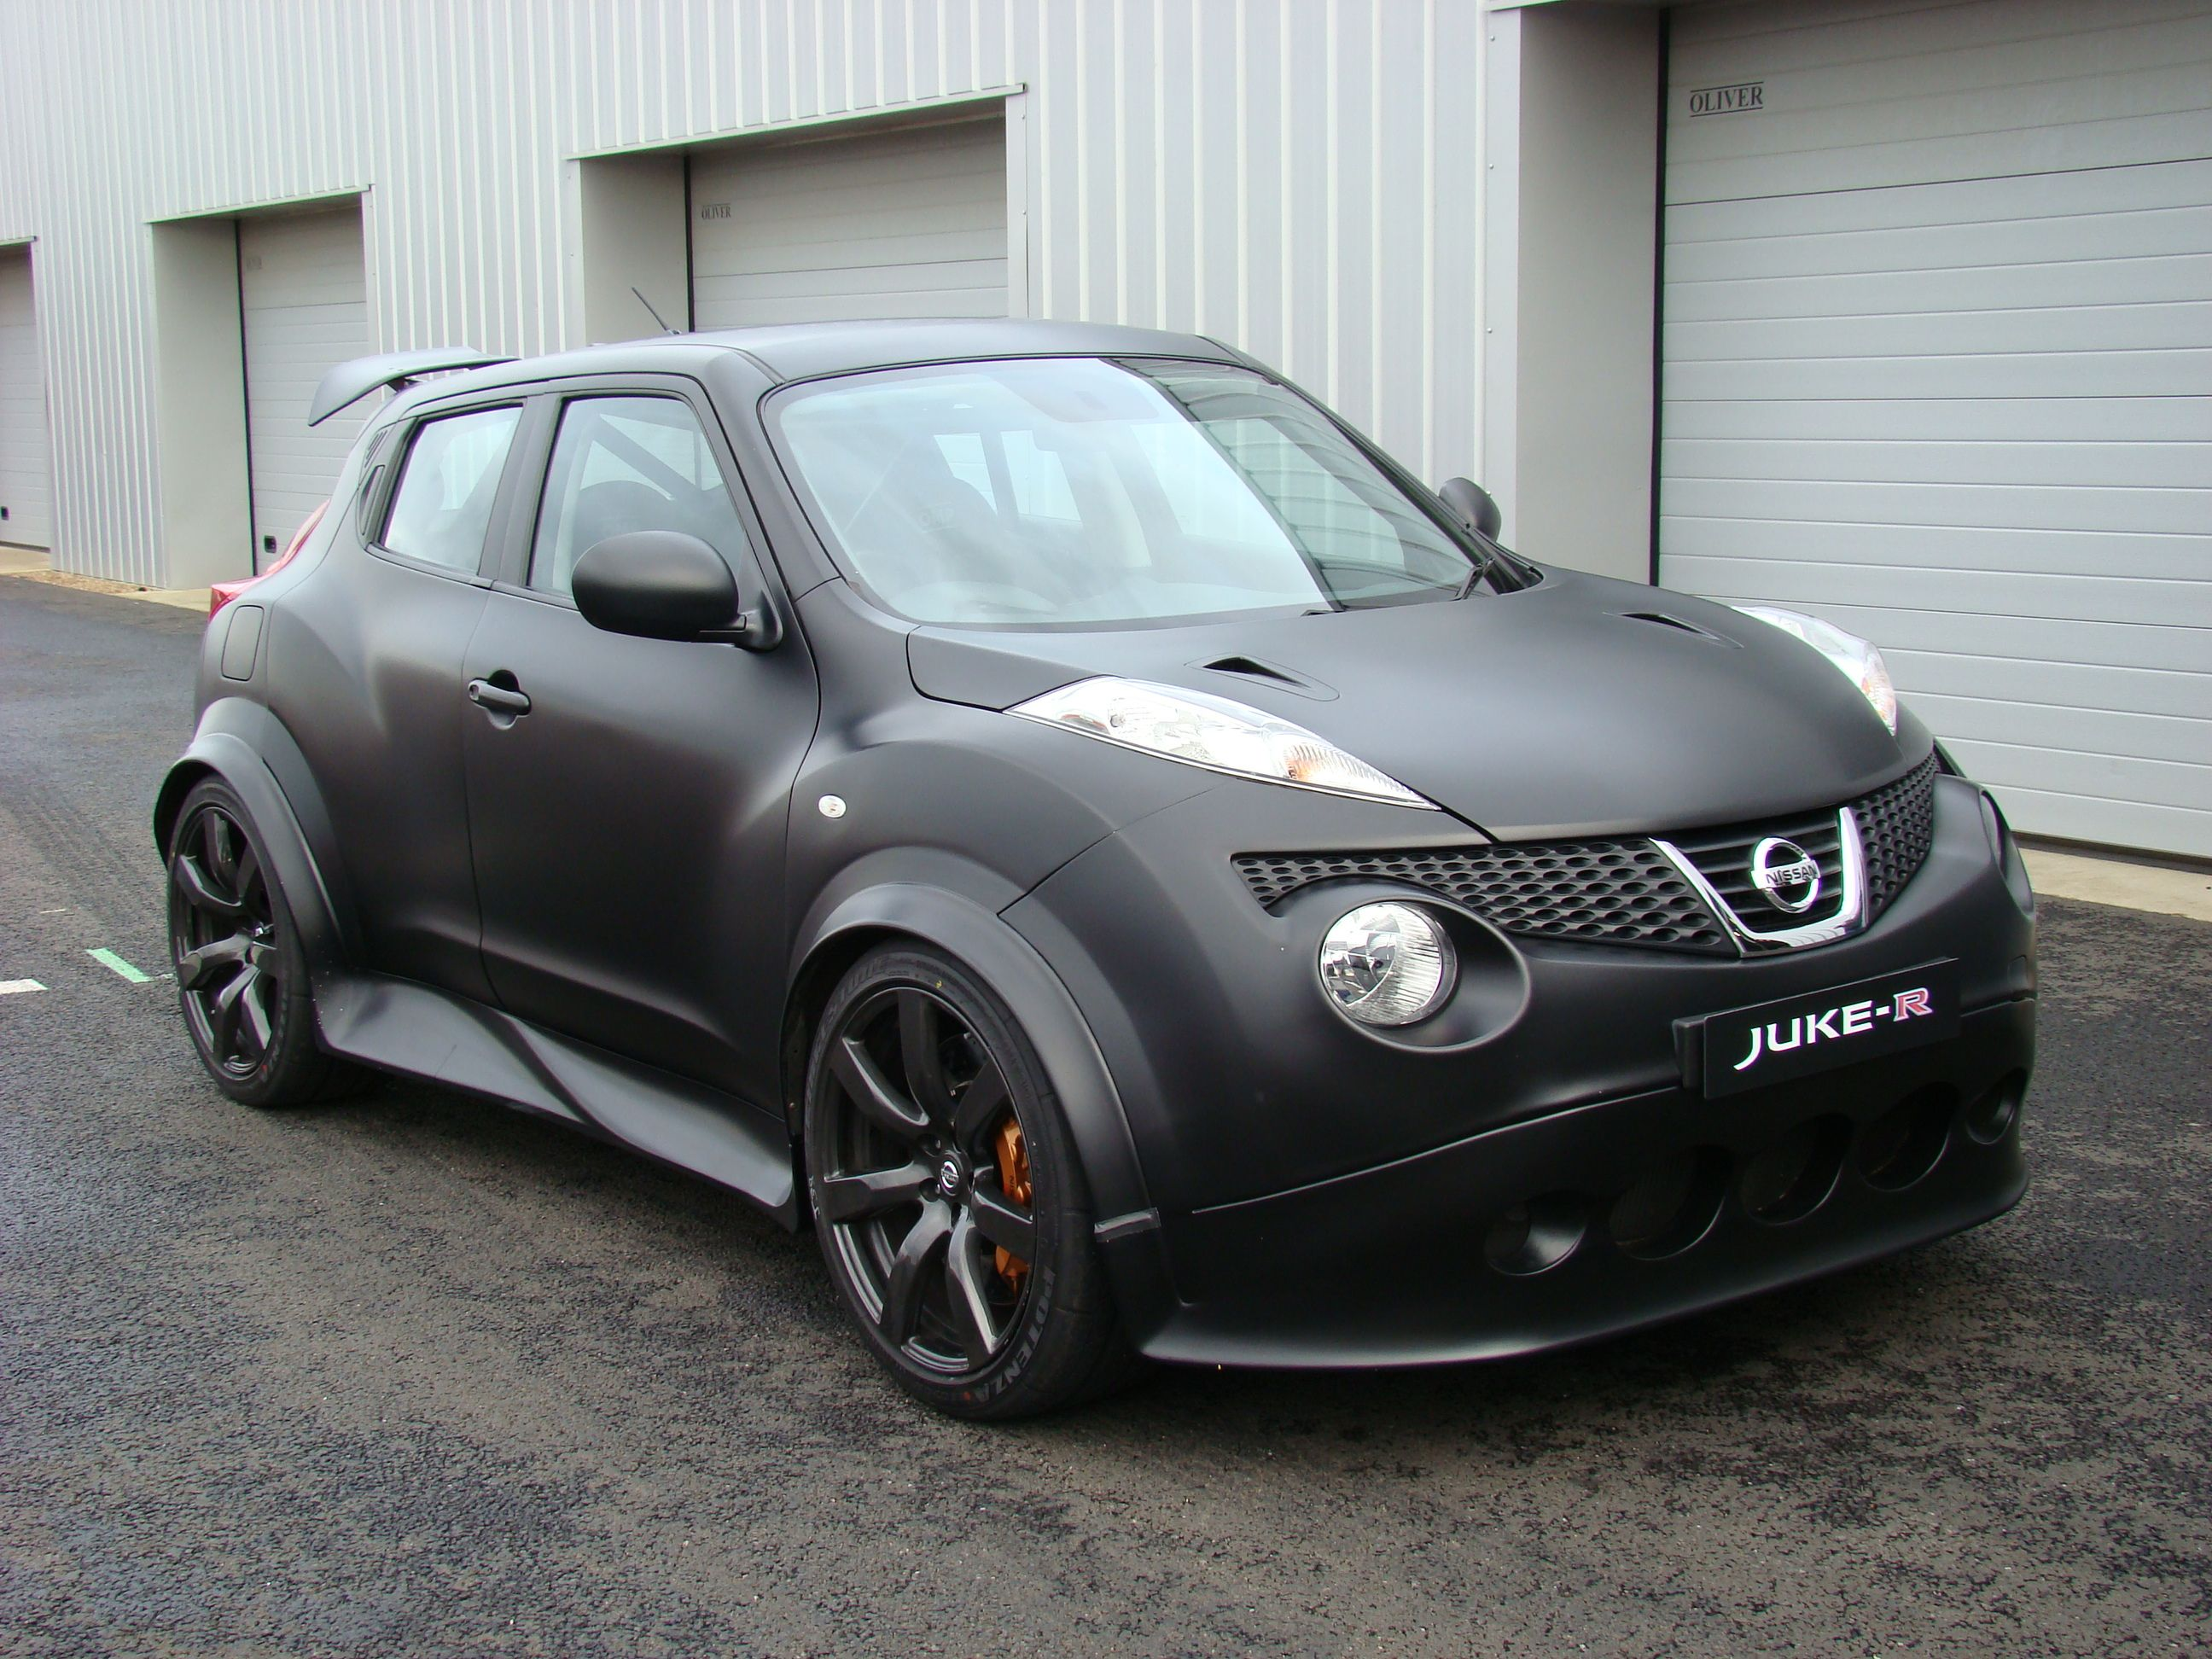 Charmant 122 Best Nissan Juke Images On Pinterest | Nissan Juke Interior, Cars And  Autos